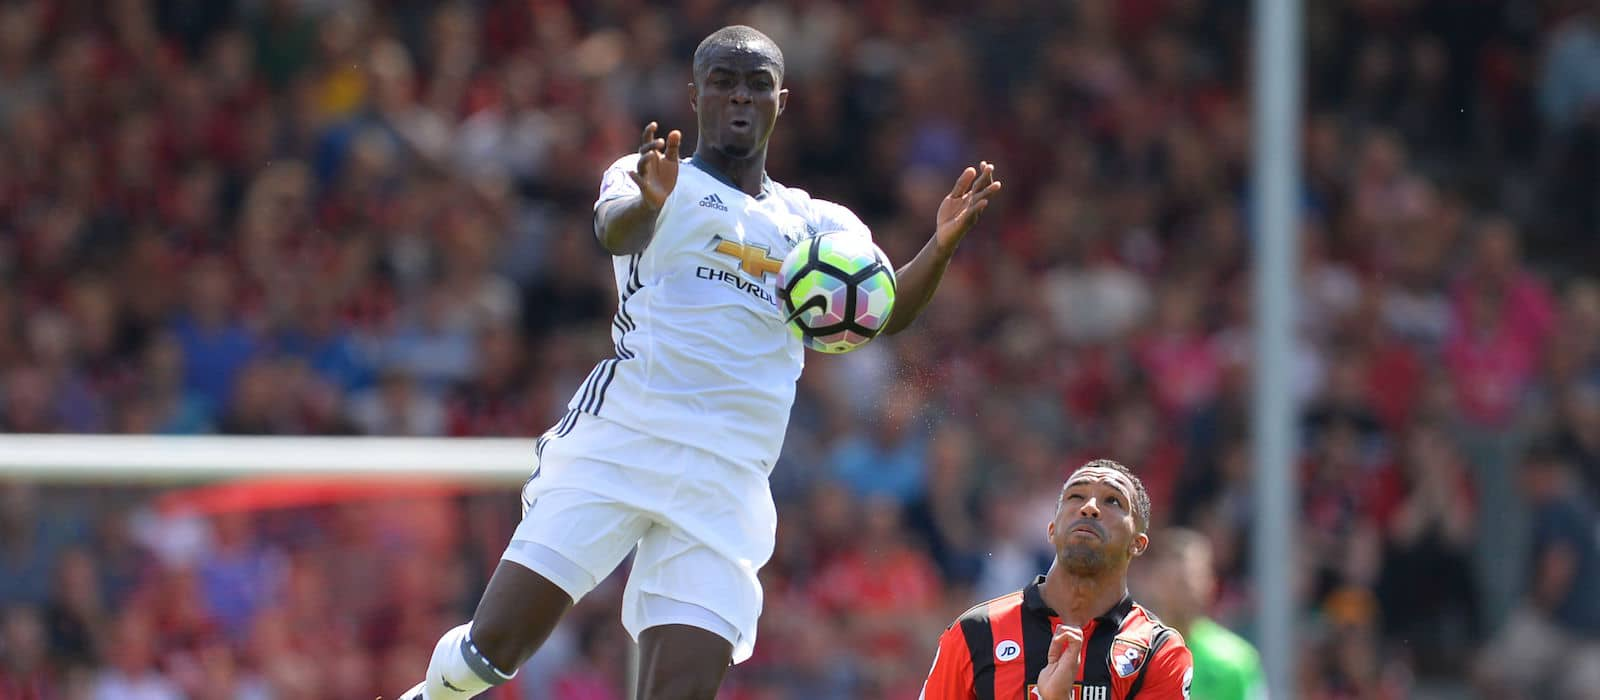 Jose Mourinho impressed with Eric Bailly performance against Bournemouth